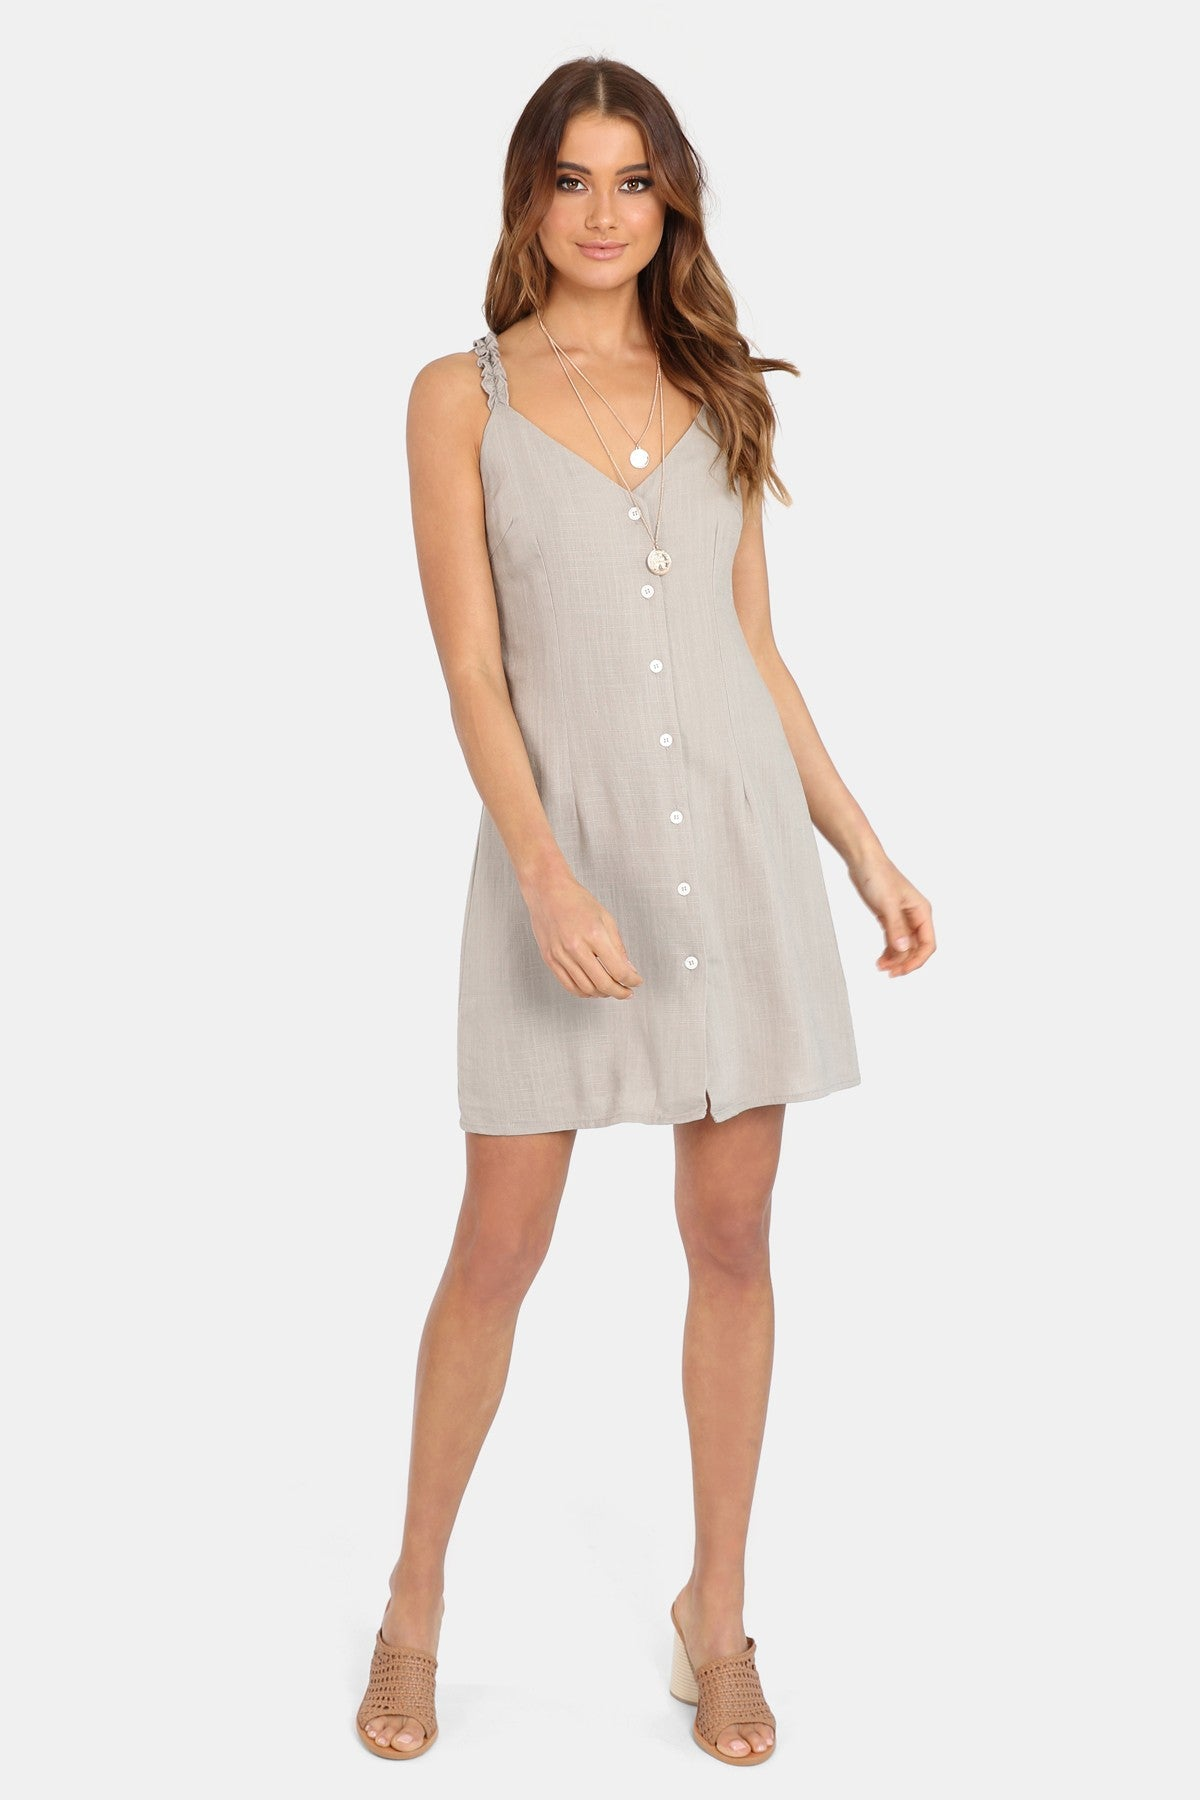 SAHARA MINI DRESS